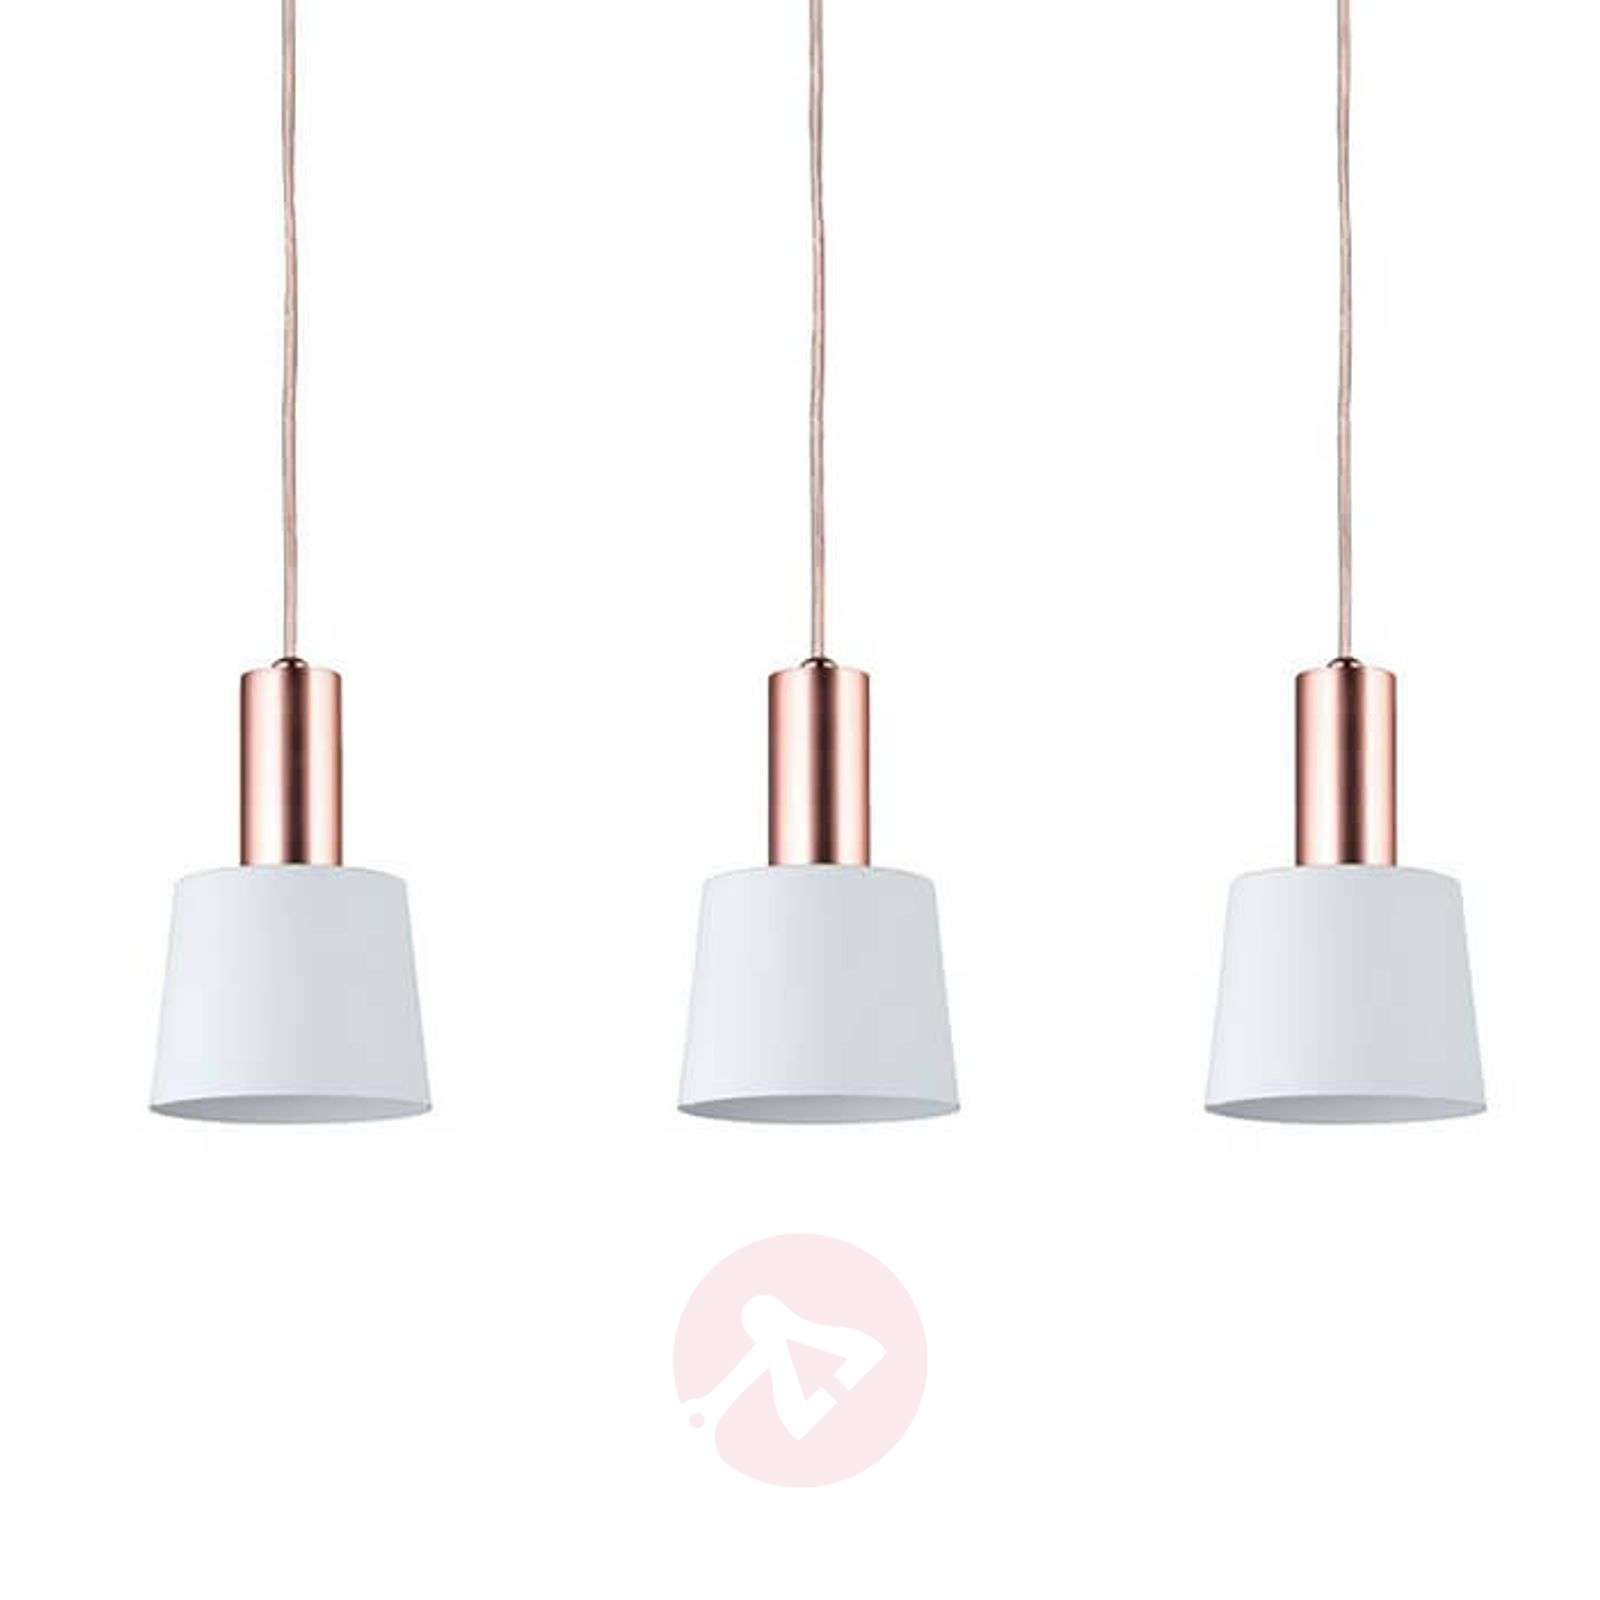 Wonderful three-bulb hanging light Haldar-7601045-01